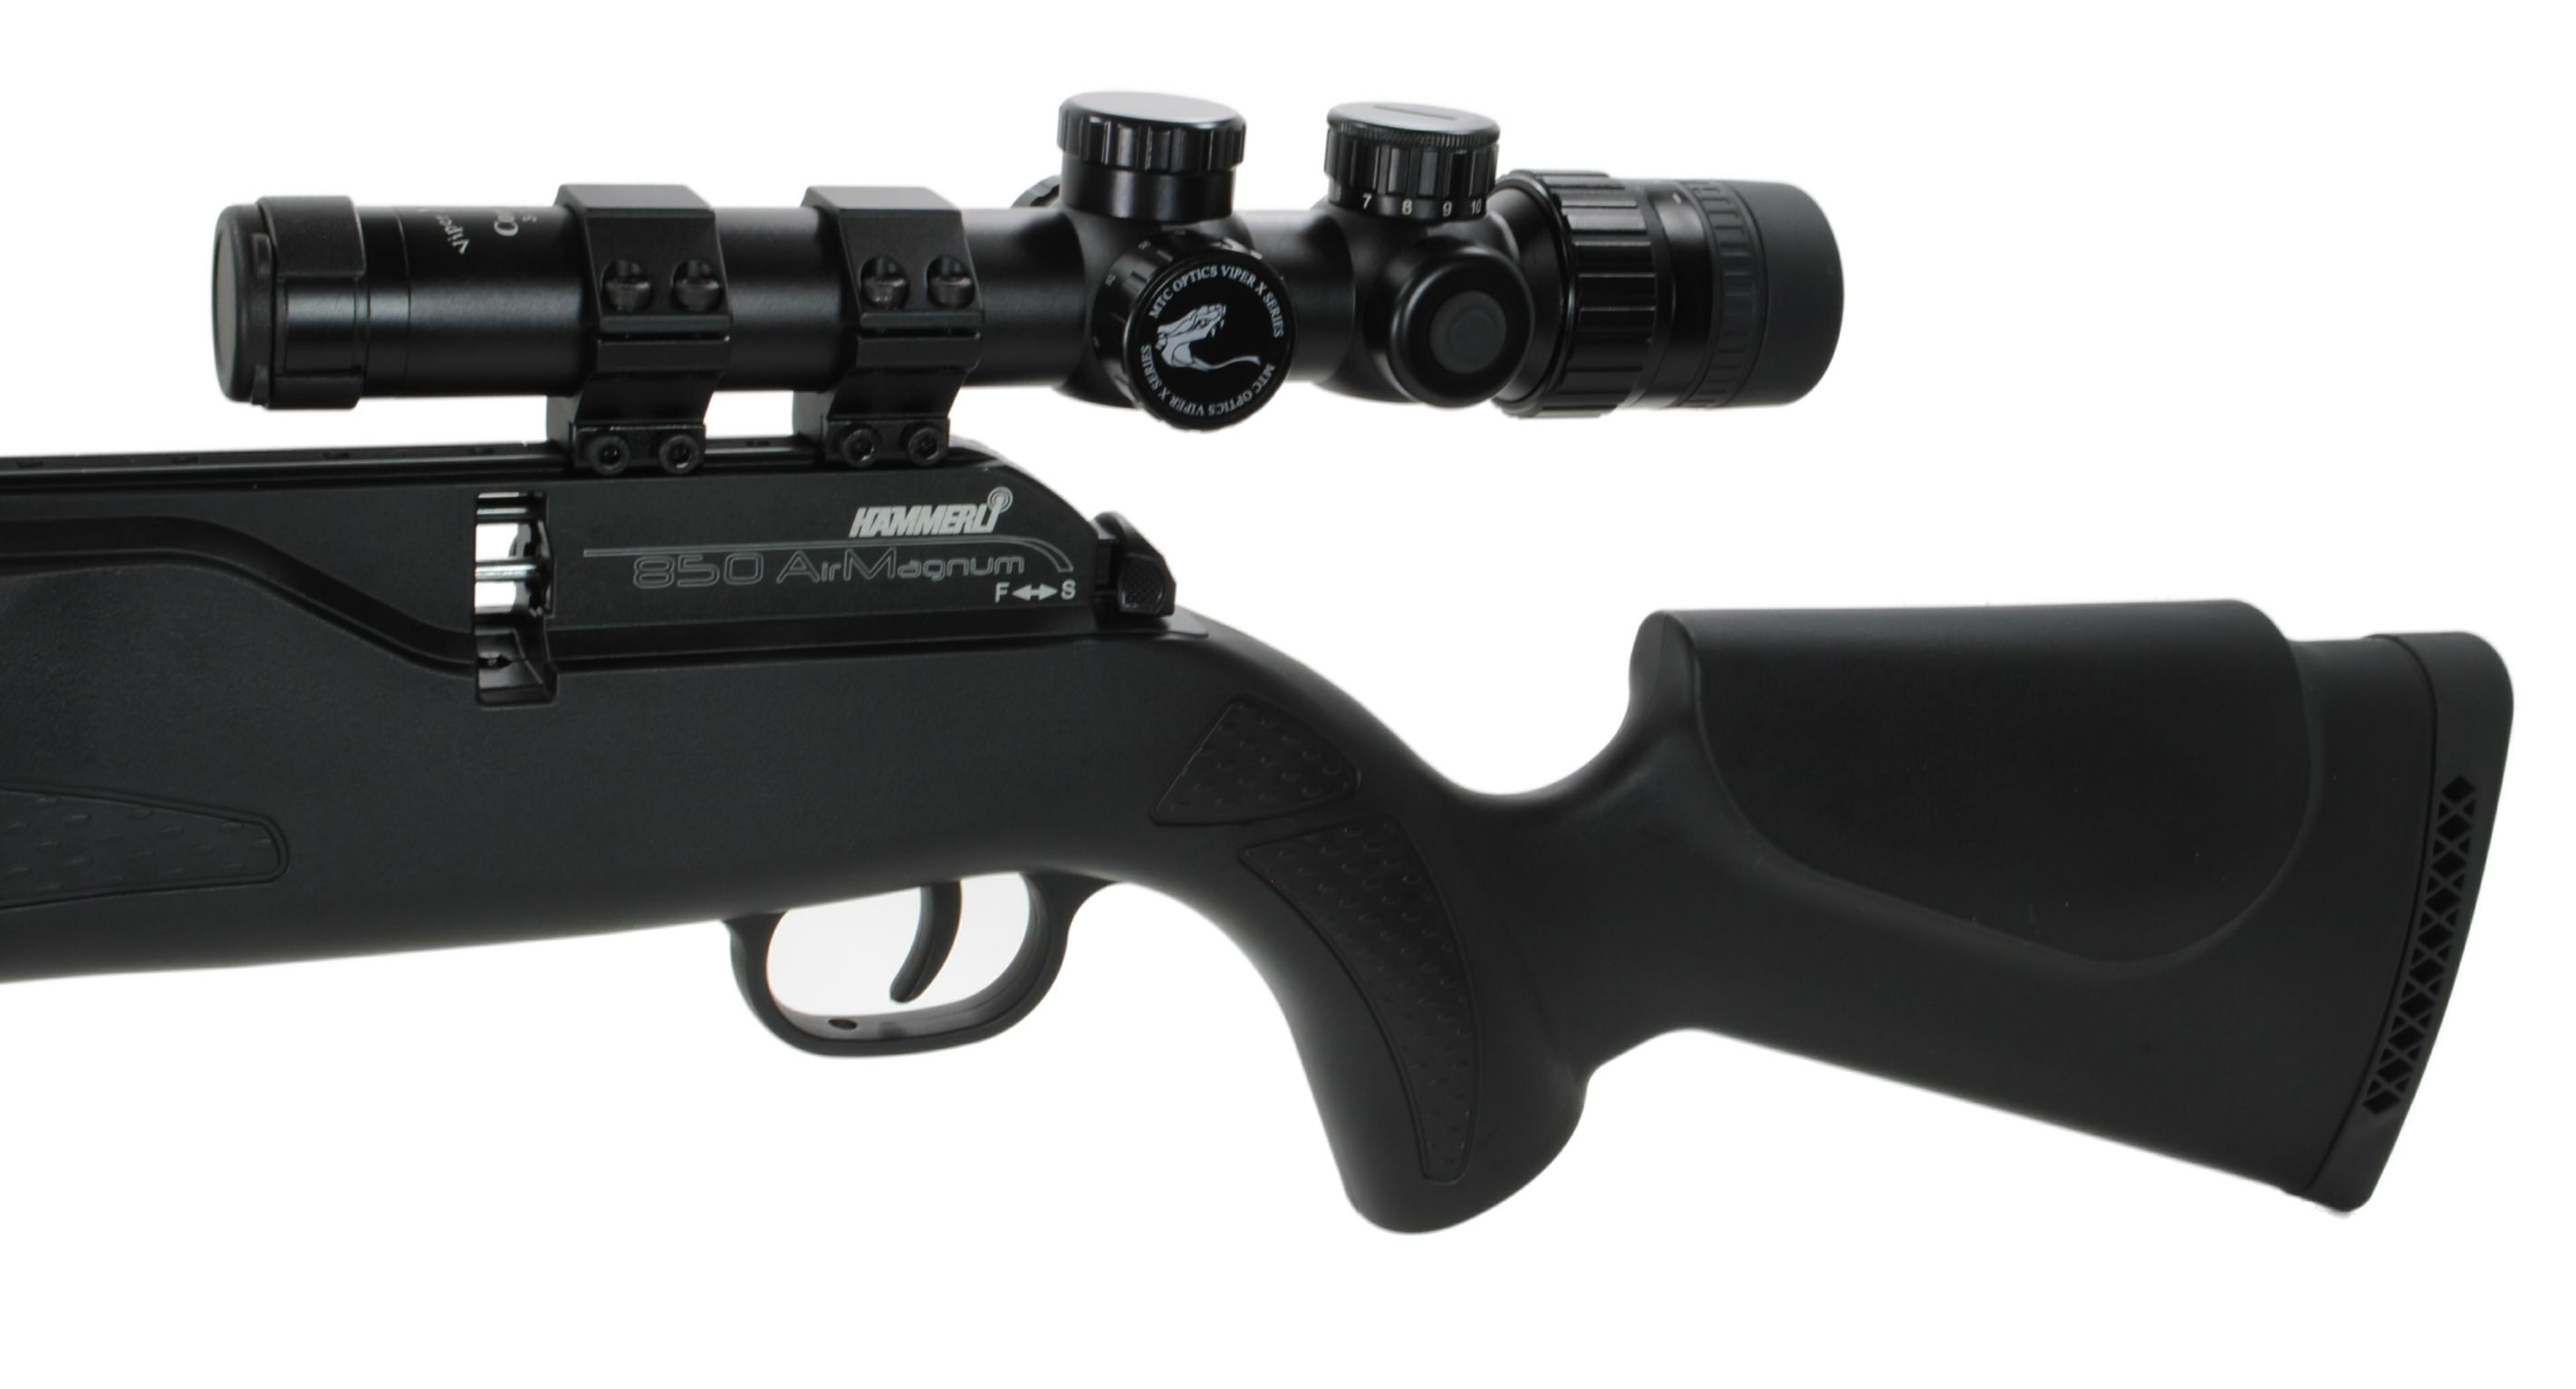 Mtc viper connect rifle scope sitting on a hammerli